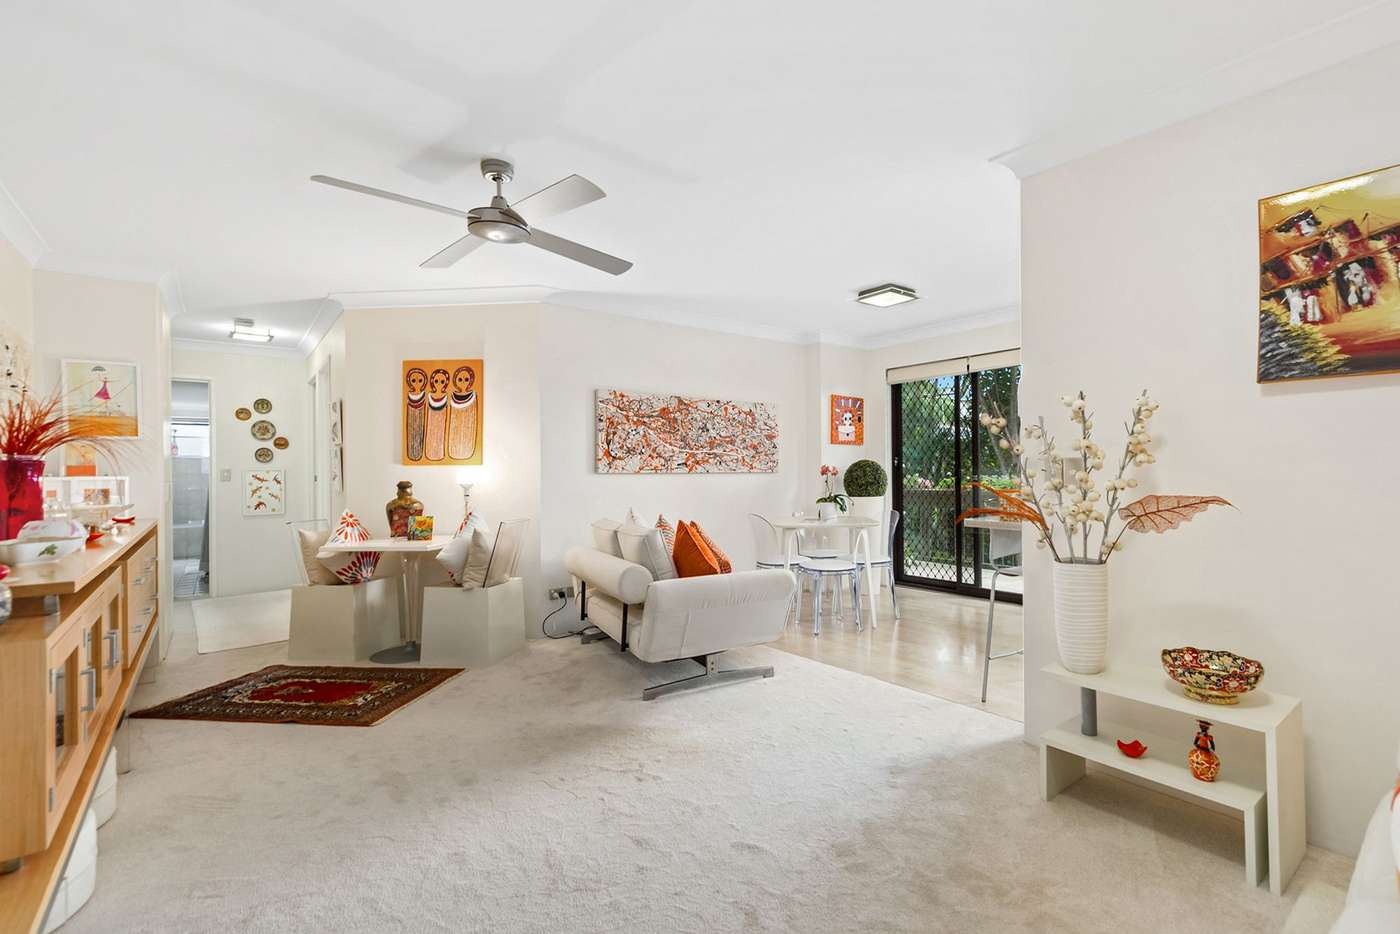 Main view of Homely apartment listing, 2/18 Bott Street, Ashgrove QLD 4060